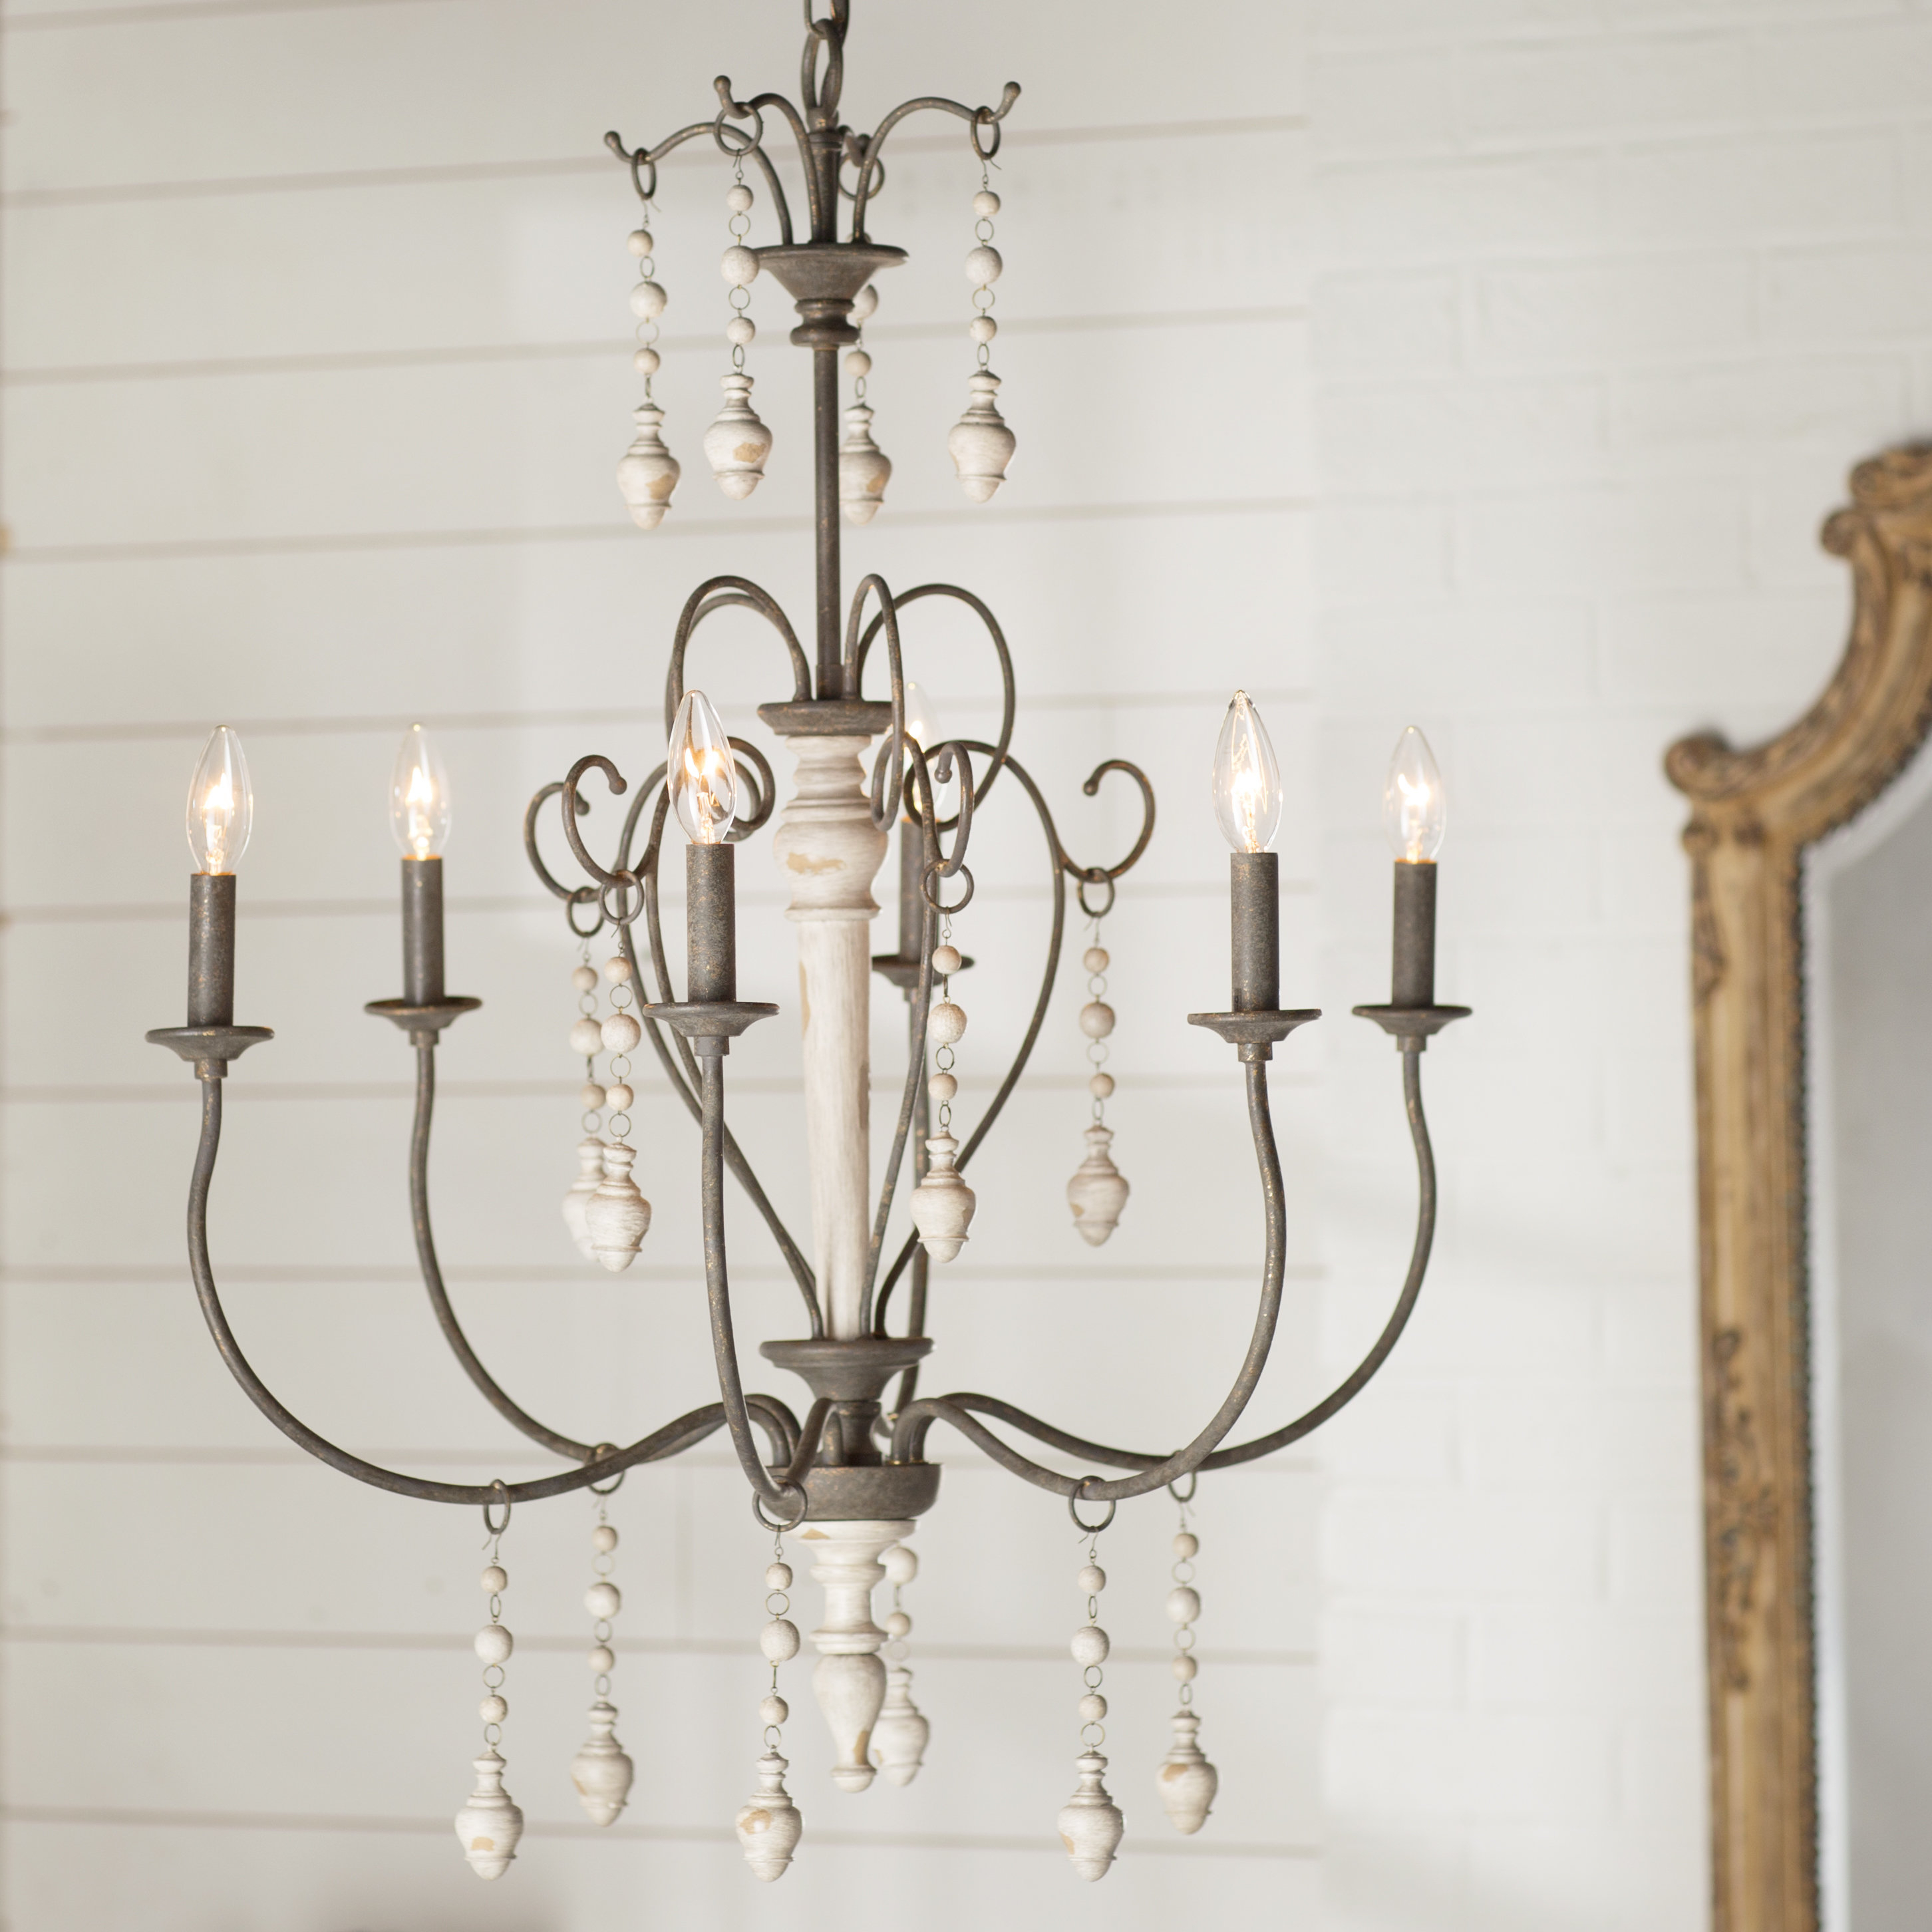 Widely Used Bouchette Traditional 6 Light Candle Style Chandeliers Regarding Bouchette Traditional 6 Light Candle Style Chandelier (Gallery 1 of 20)